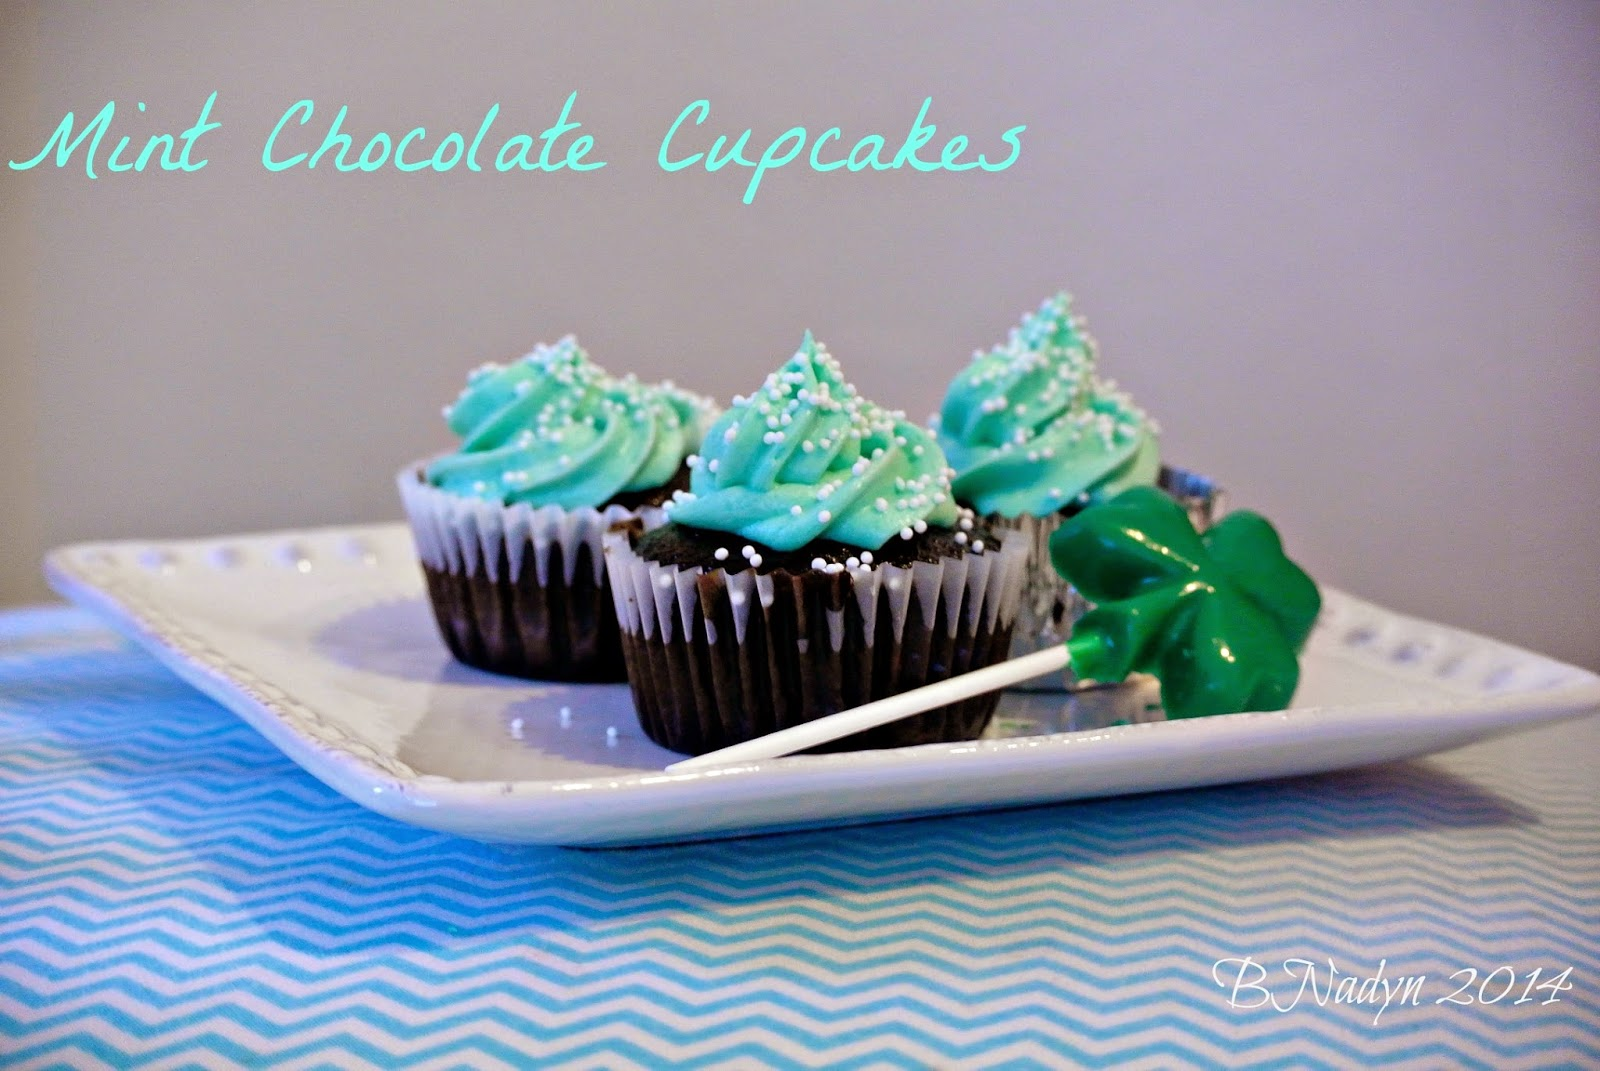 Mint chocolate, cupcakes, St. Patrick's Day